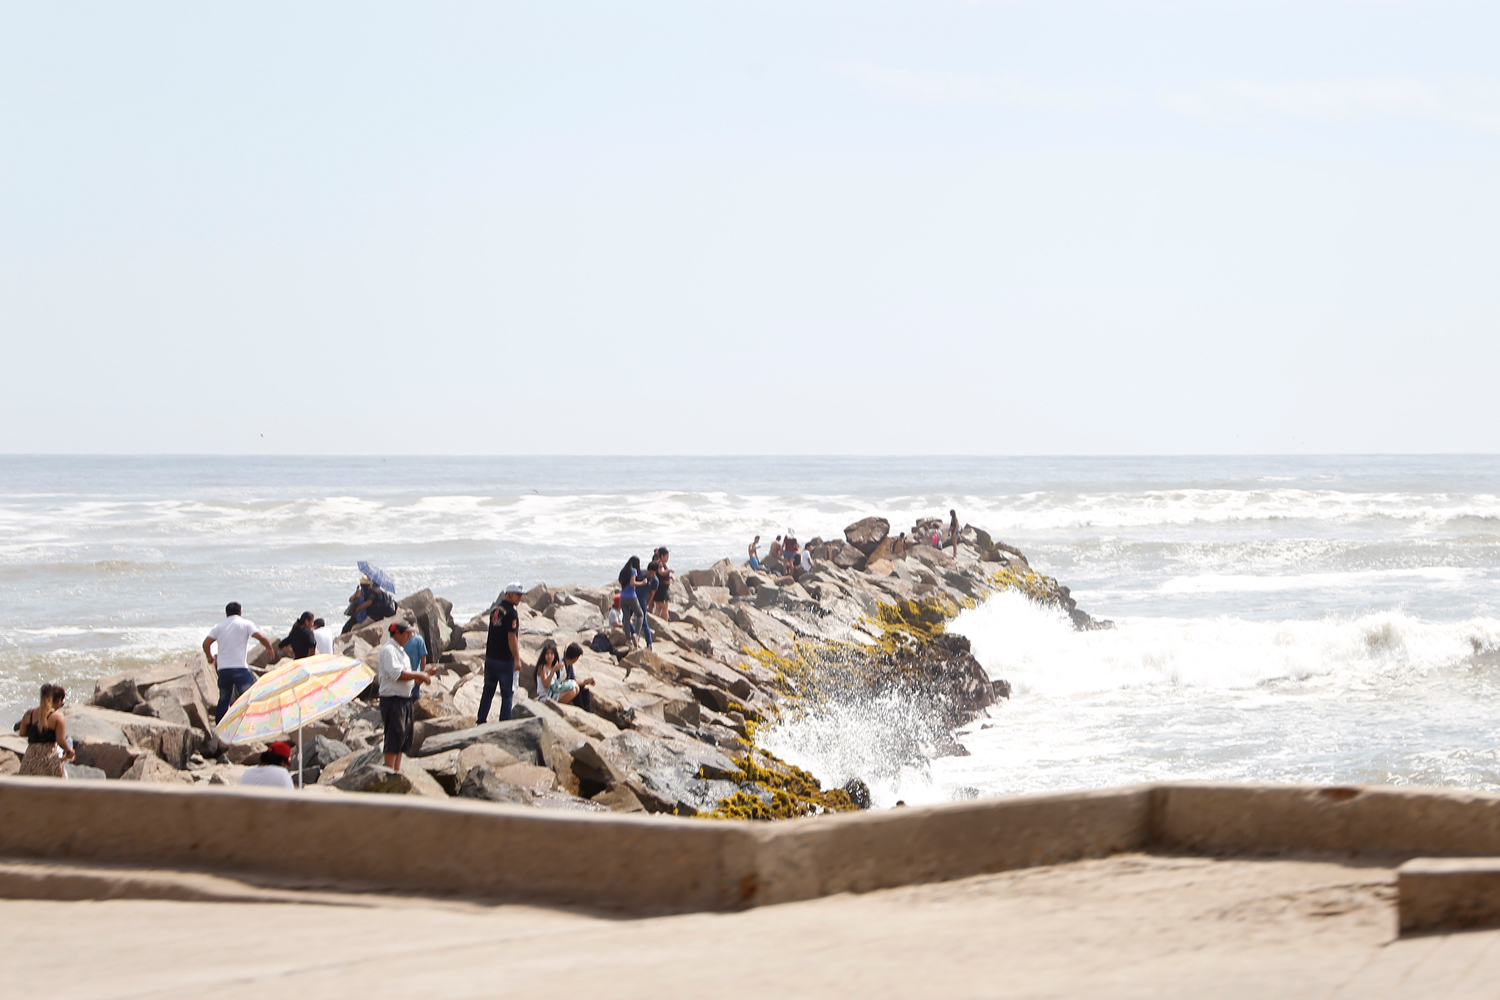 About two dozen people have come to a rocky pier that stretches from the beach promenade into the sea. Some are sitting on the rocks, others are standing around in small groups as high waves crash onto the edge of the pier.